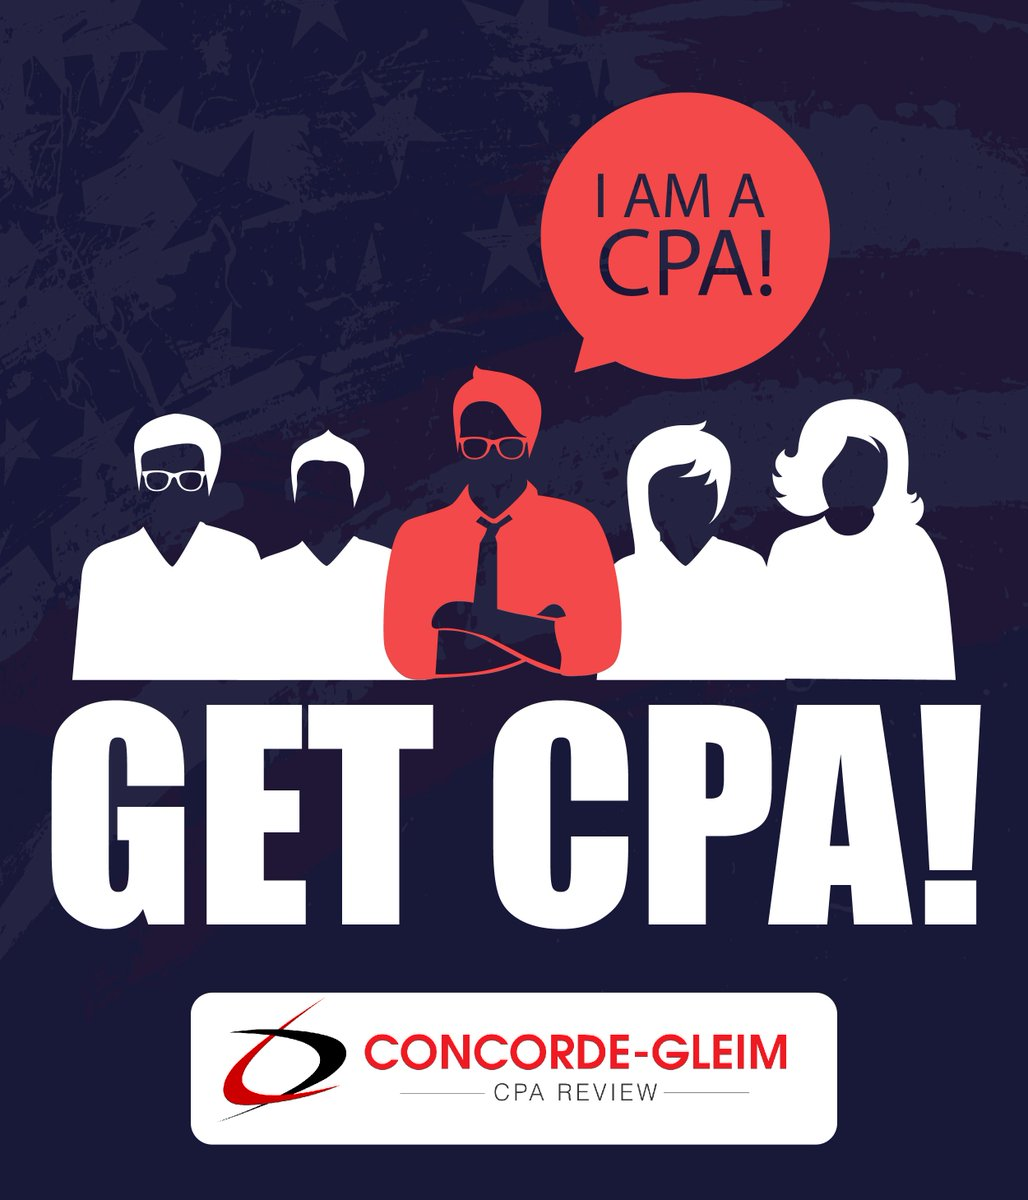 Cpacertification Hashtag On Twitter